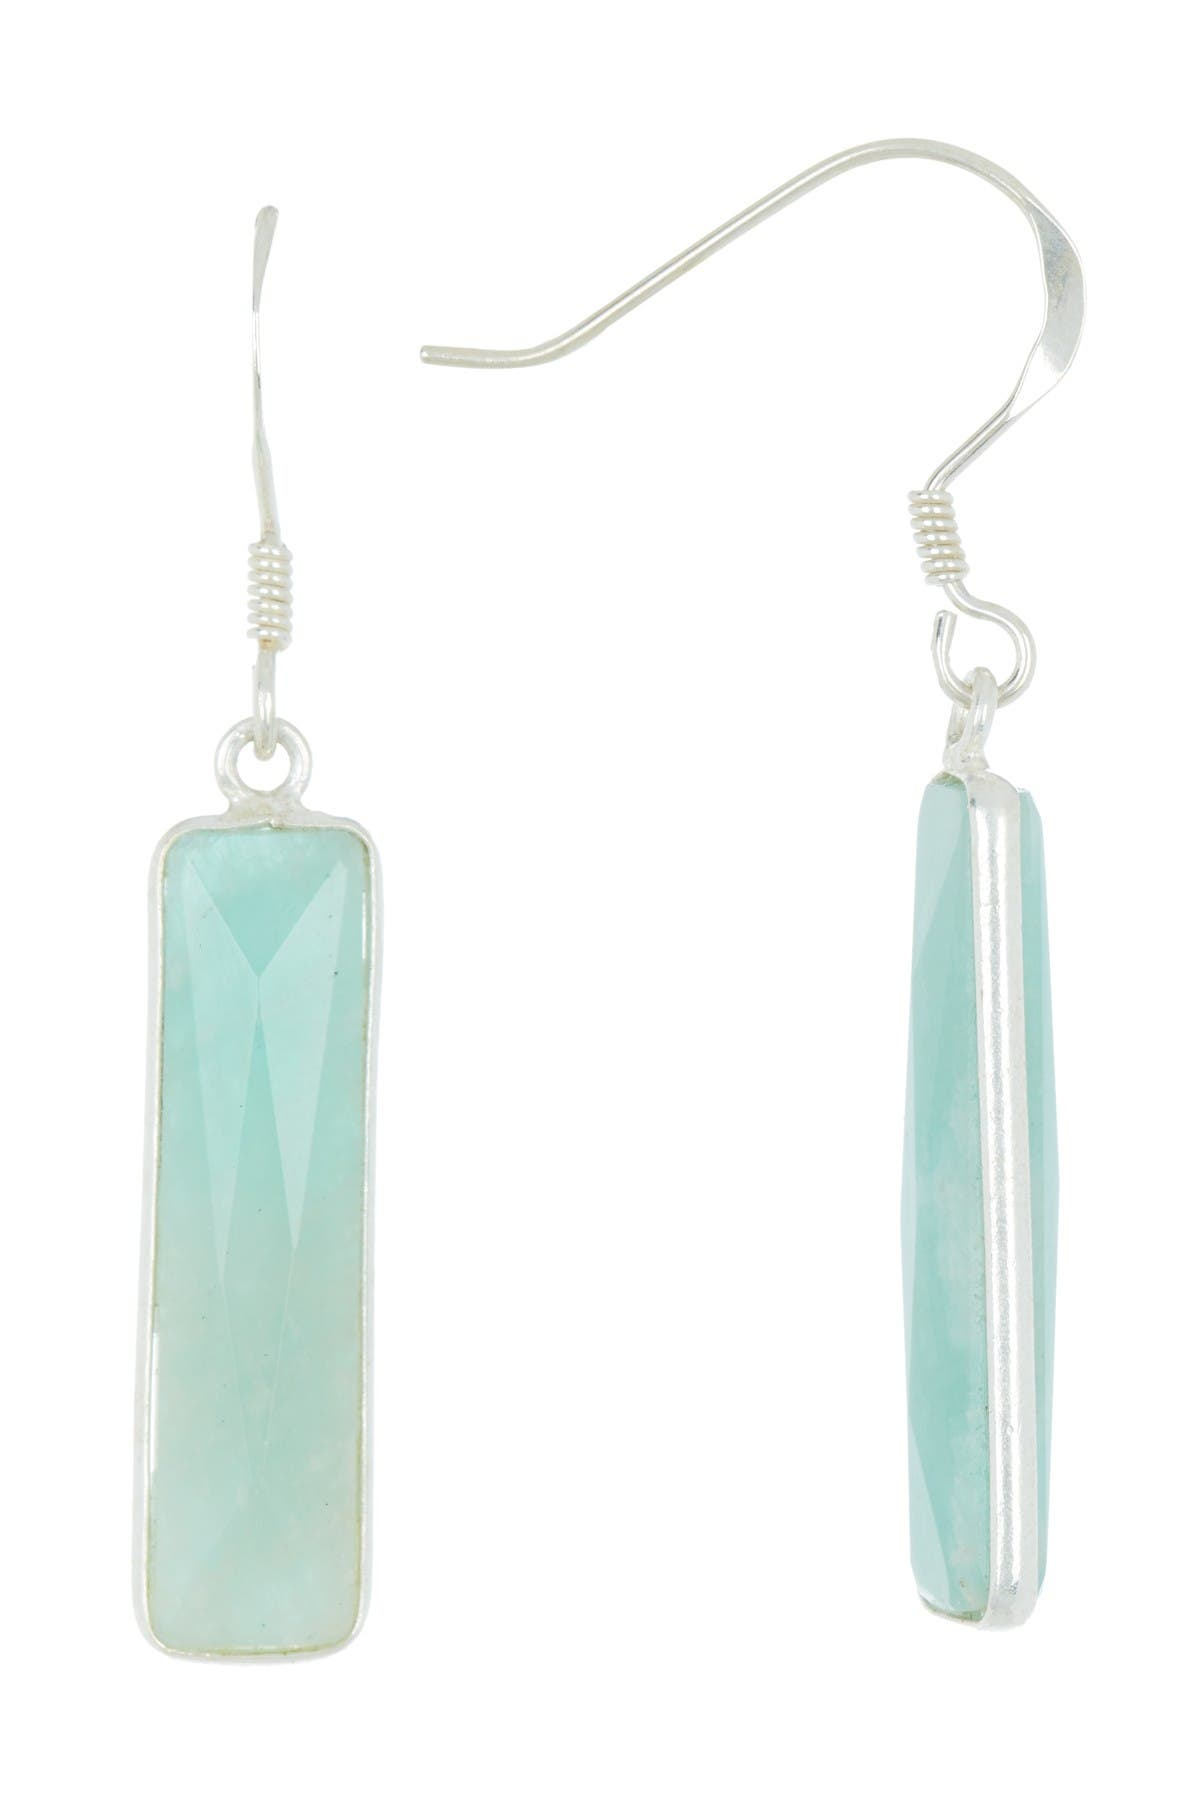 Amazonite and sterling silver French hook earrings